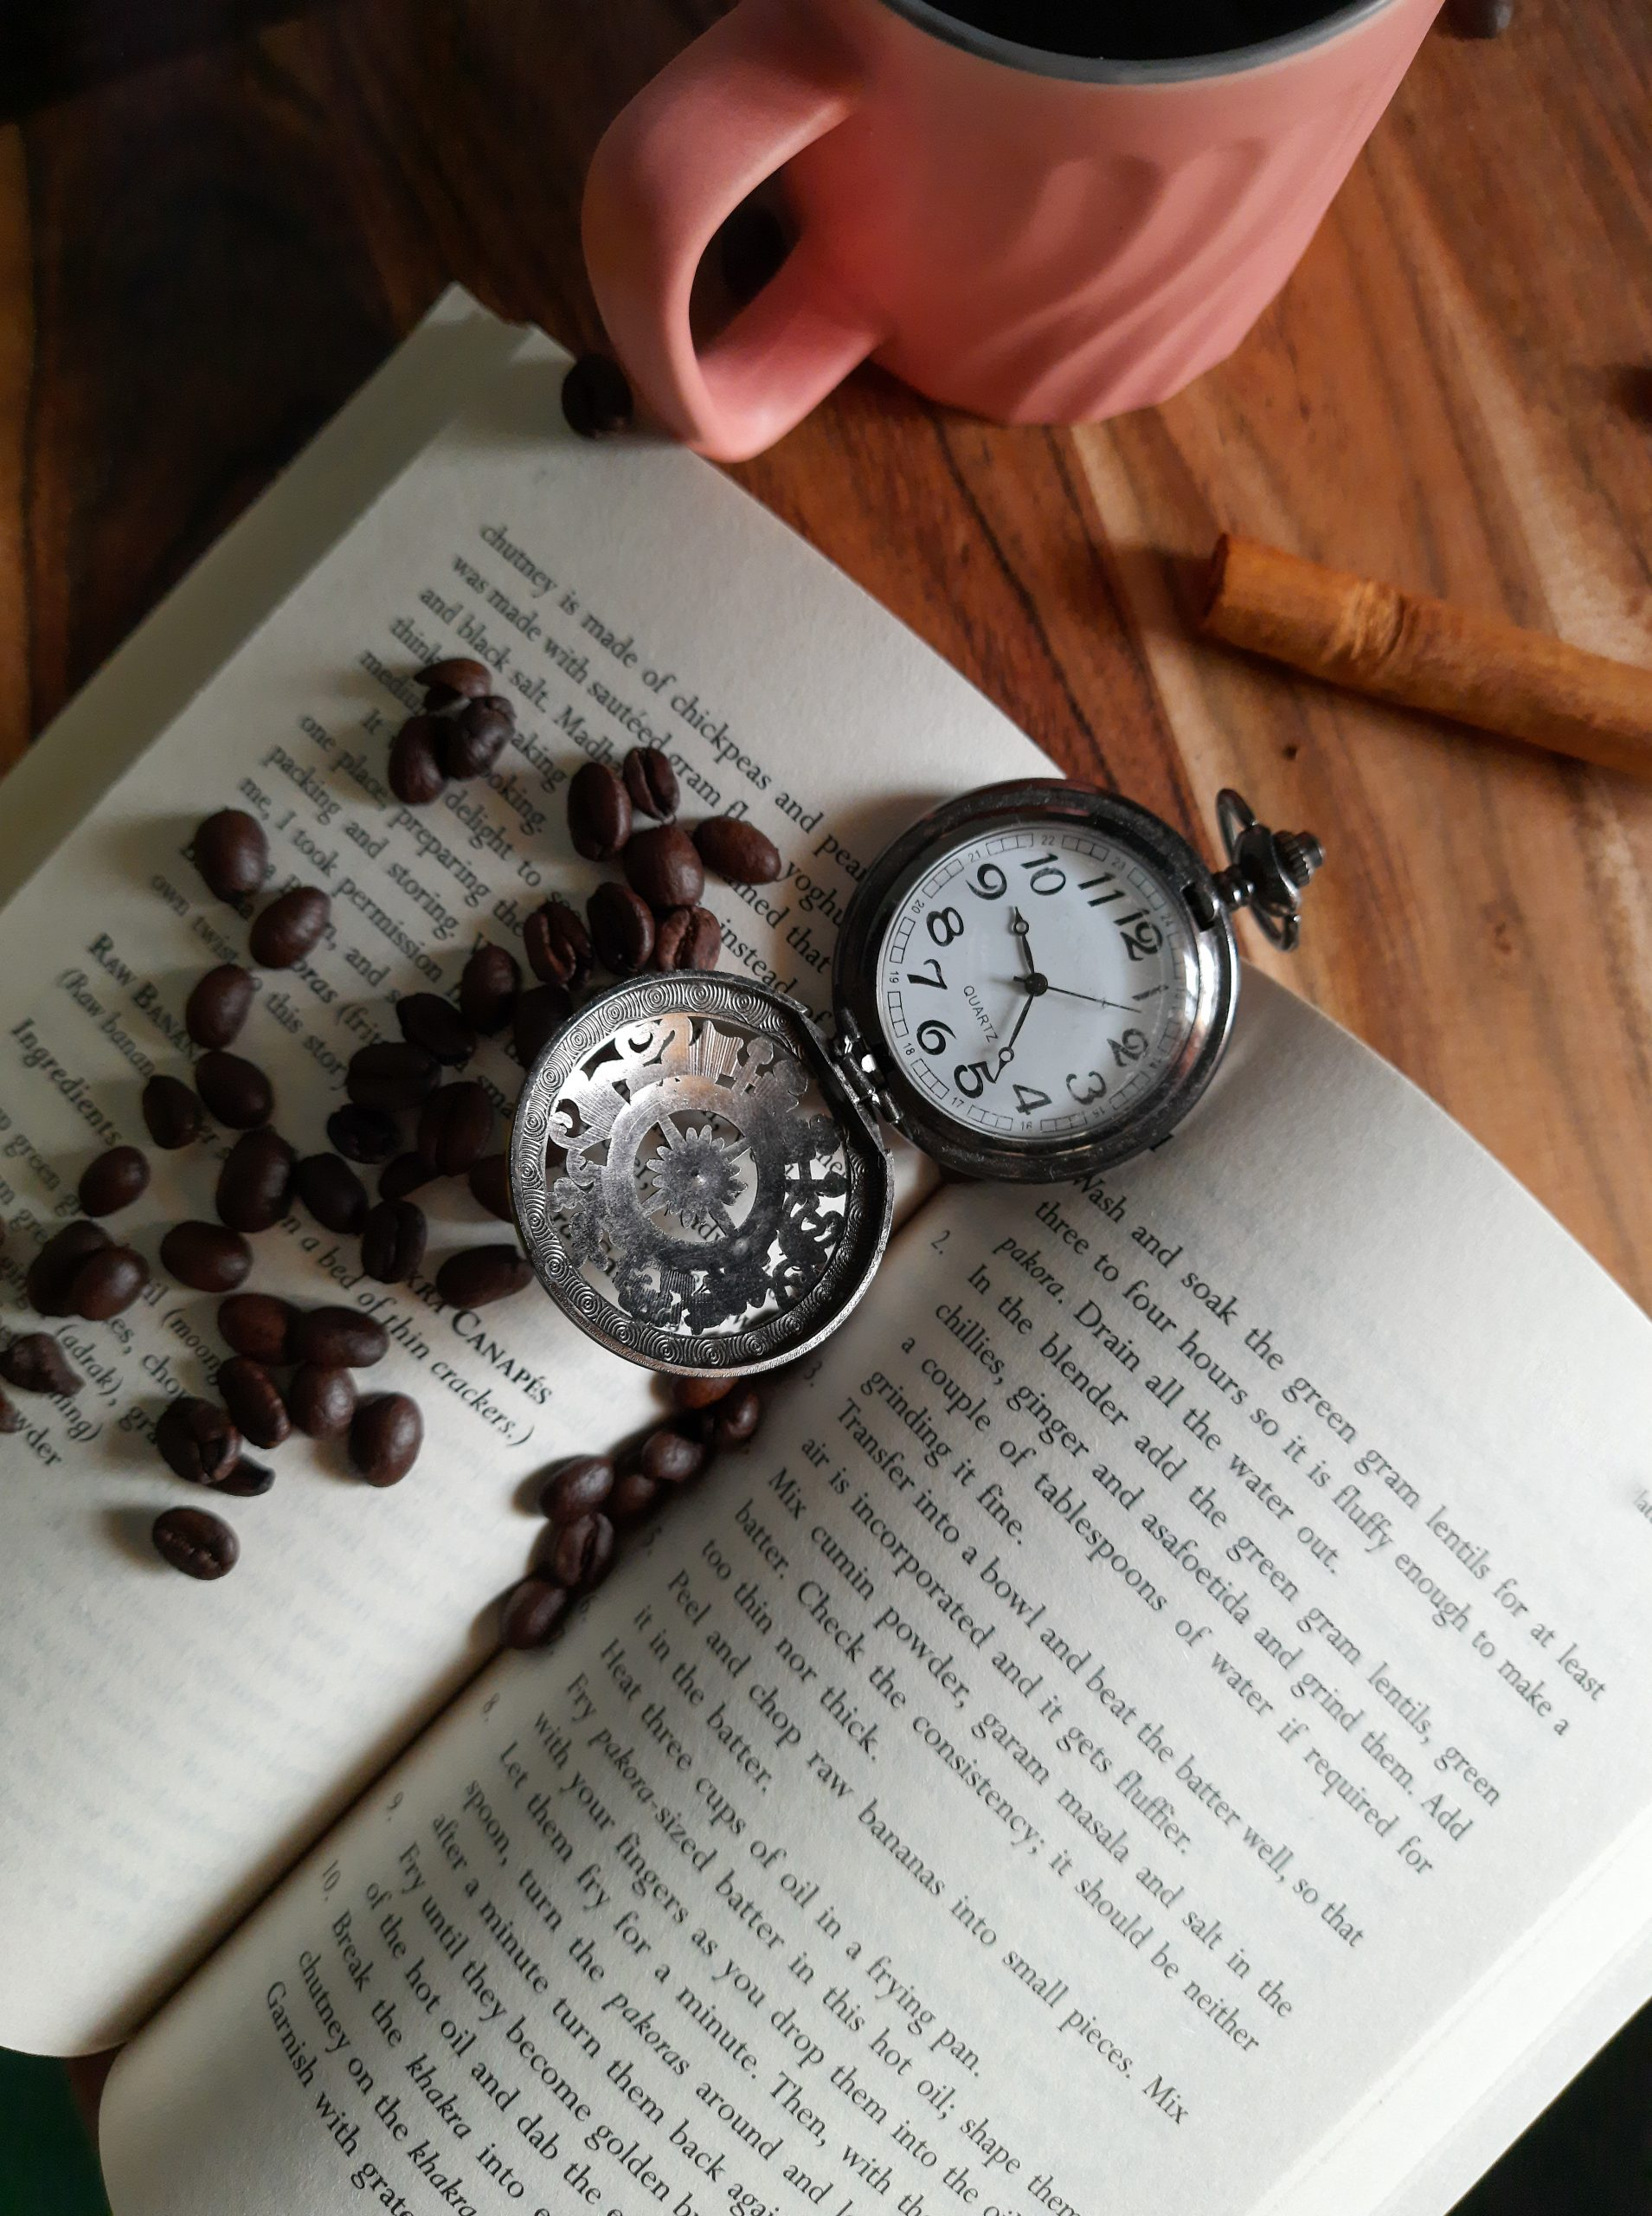 An antique watch and book